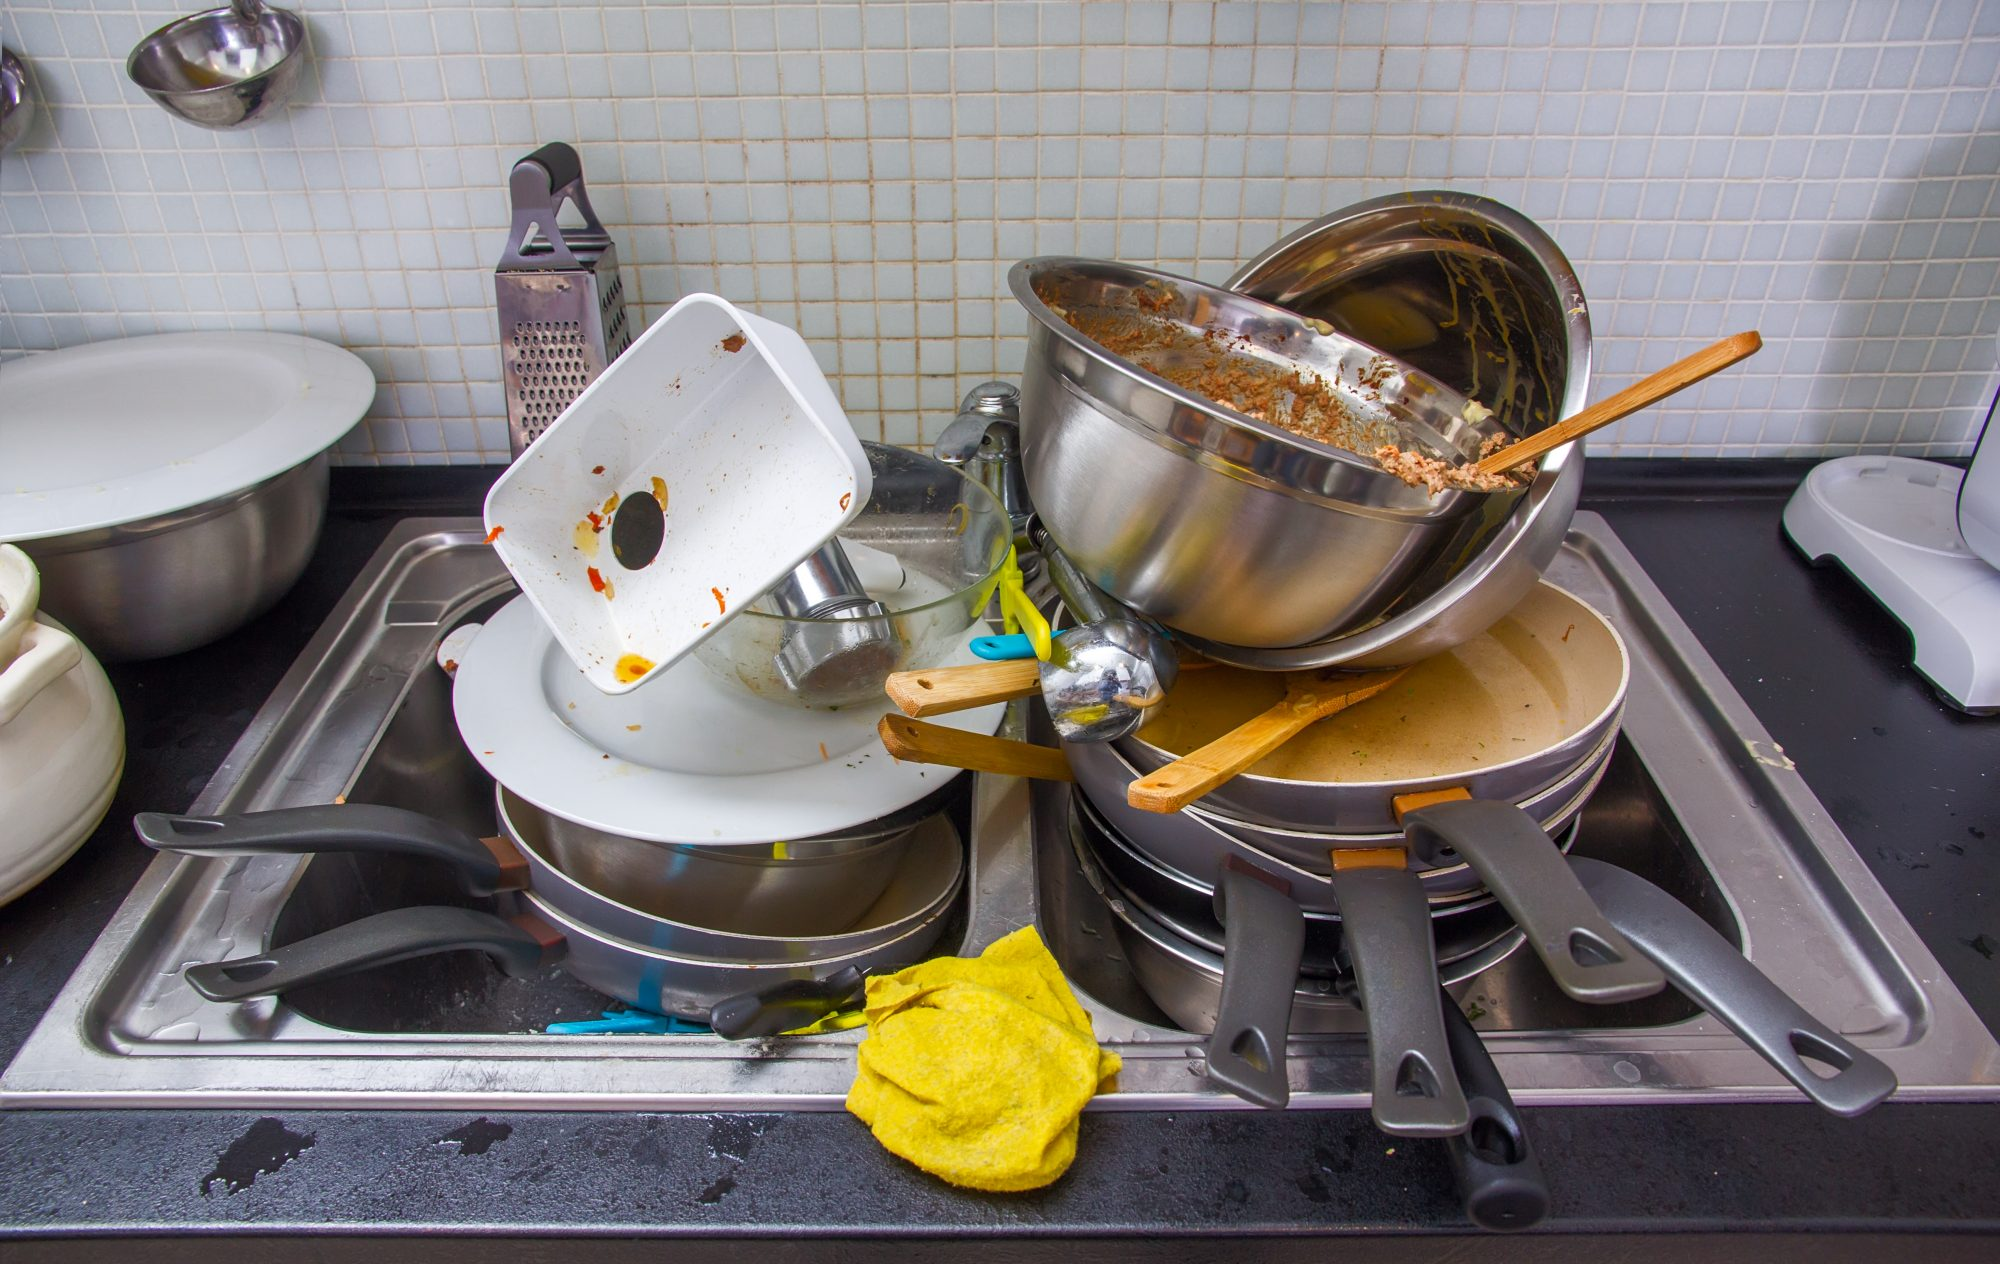 sink-of-dishes-getty